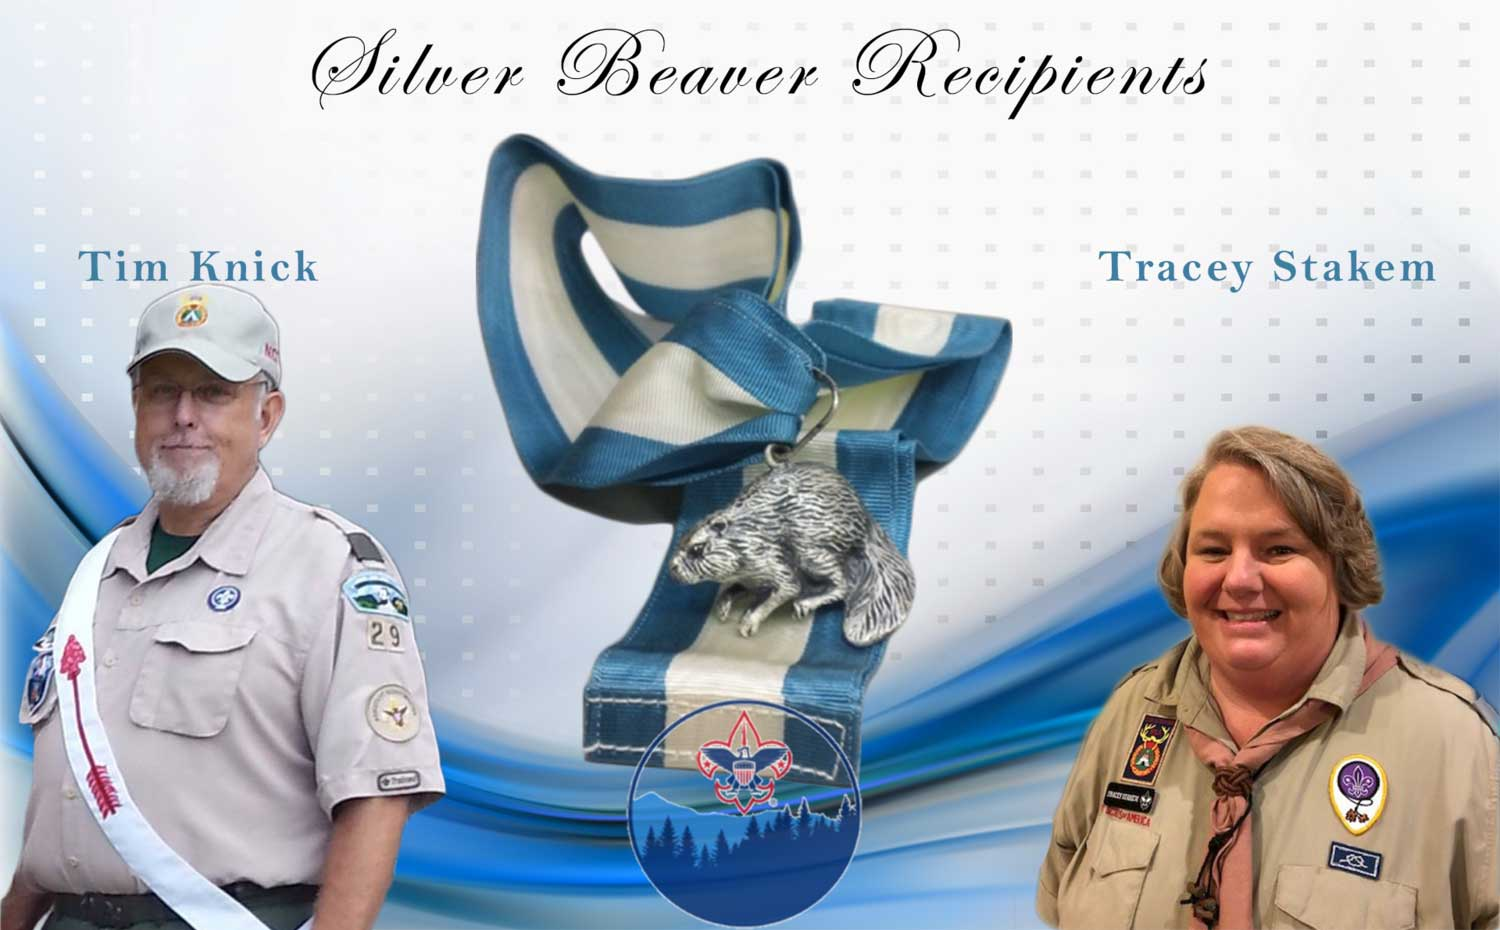 Silver Beaver Recipients Tim Knick and Tracey Stakem